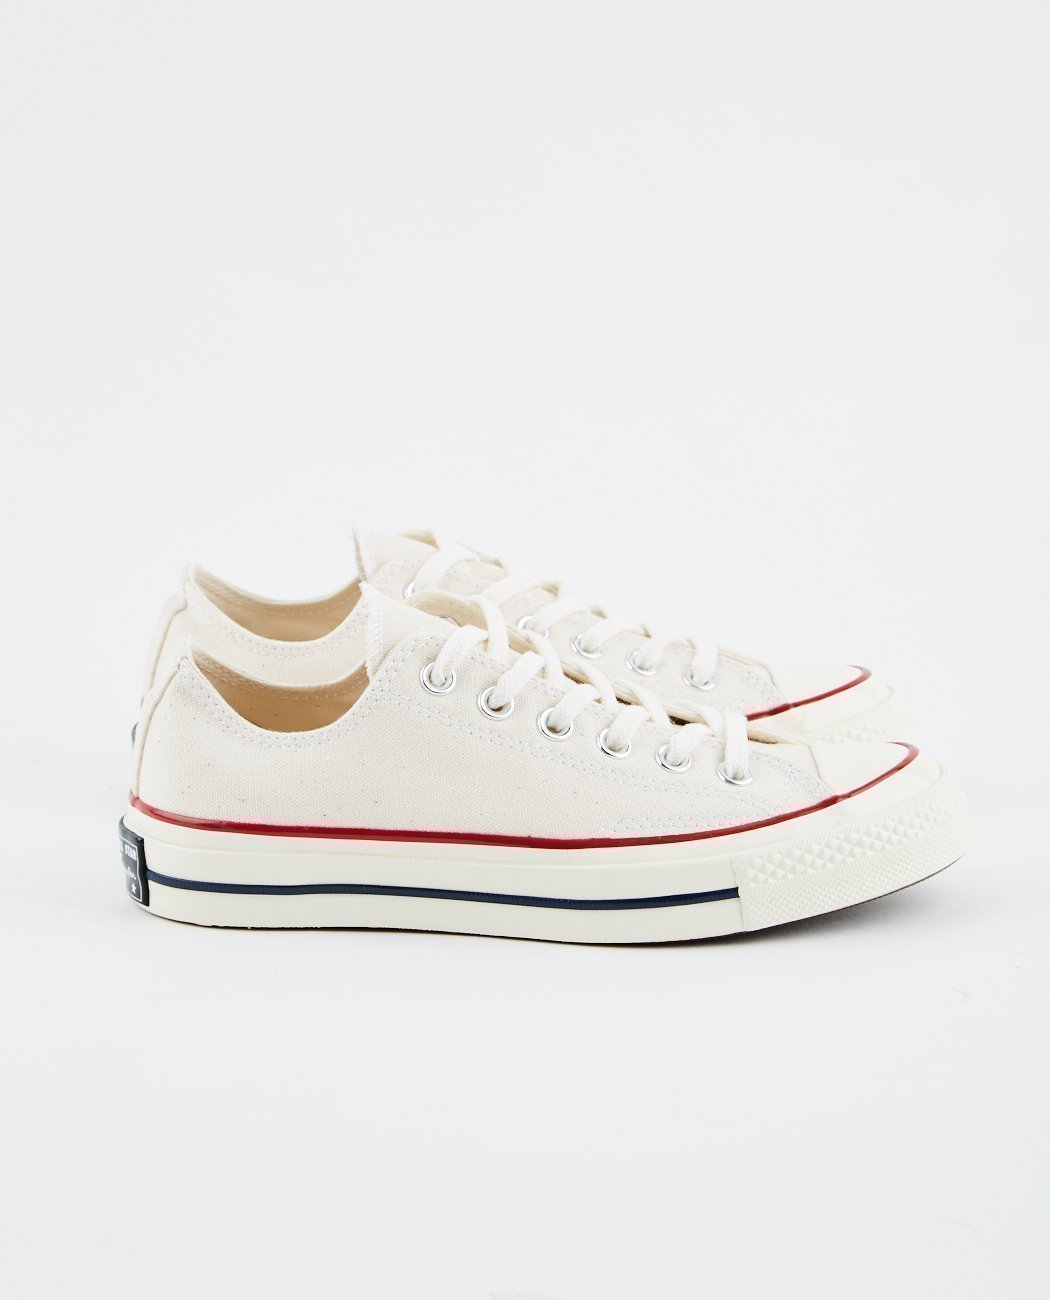 Converse CHUCK TAYLOR ALL STAR '70 LOW TOP OFF WHITE